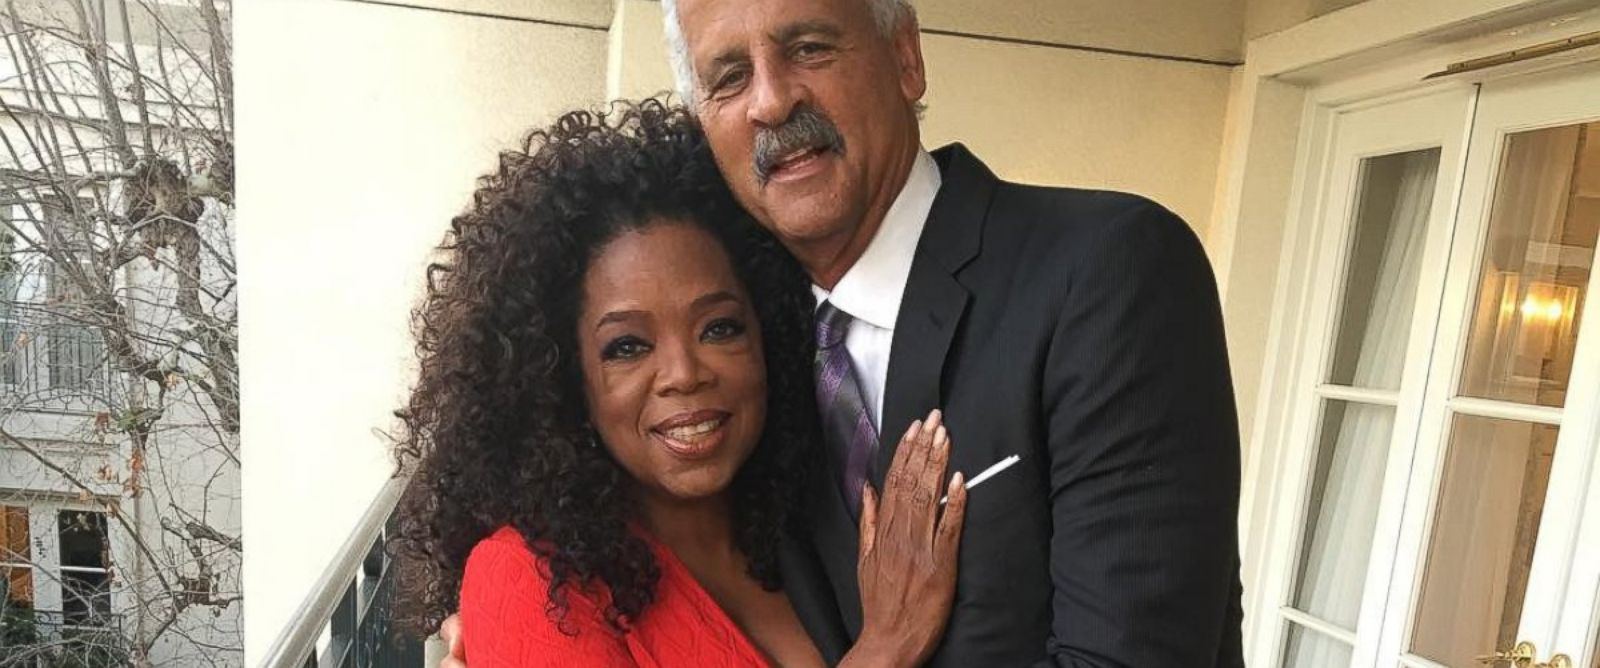 """PHOTO: Oprah posted this photo to Instagram with the caption """"Stepping out with my Valentine of almost 30 yrs! #iovinewedding"""" on Feb. 12, 2016."""